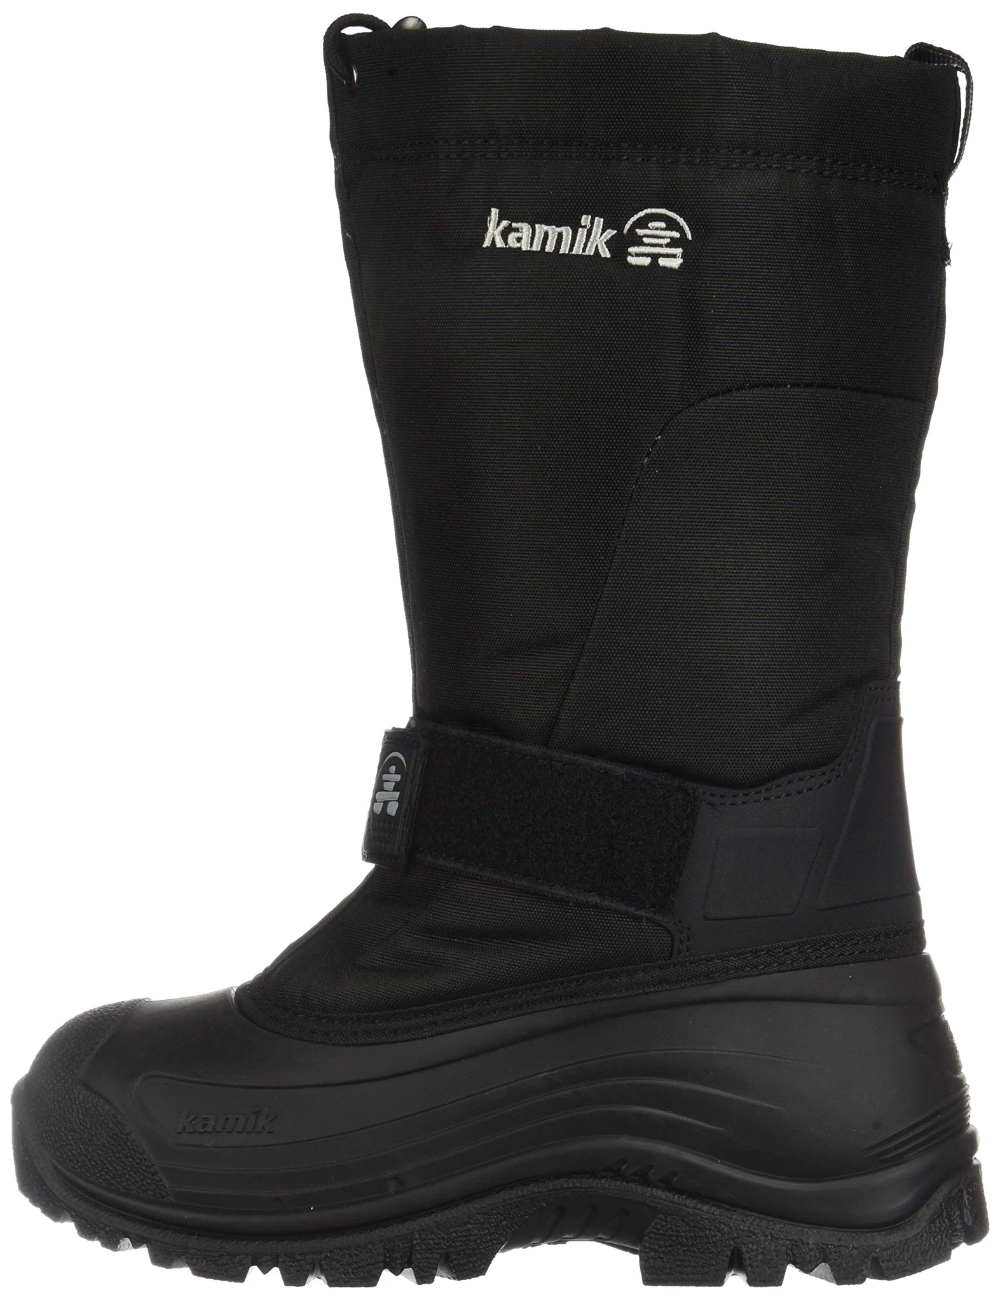 Mens winter boots, Cold weather boots